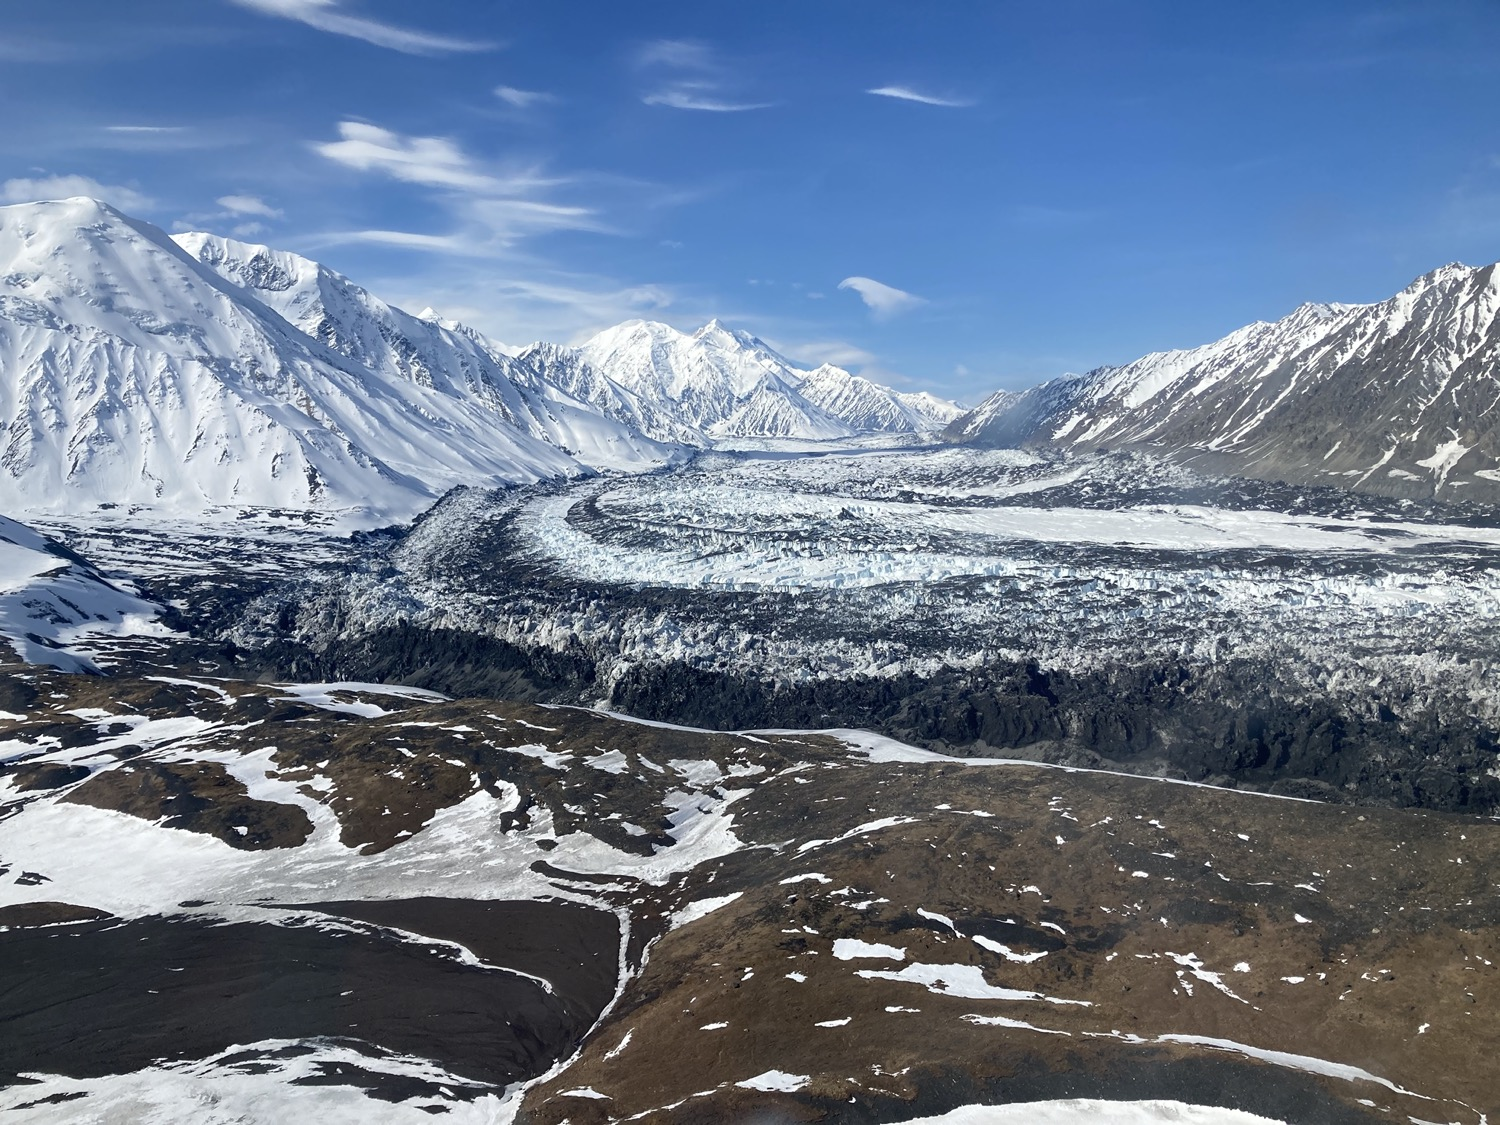 a mountainous landscape, half covered in snow, with a sweeping flat glacial body in the center at the foot of the mountains